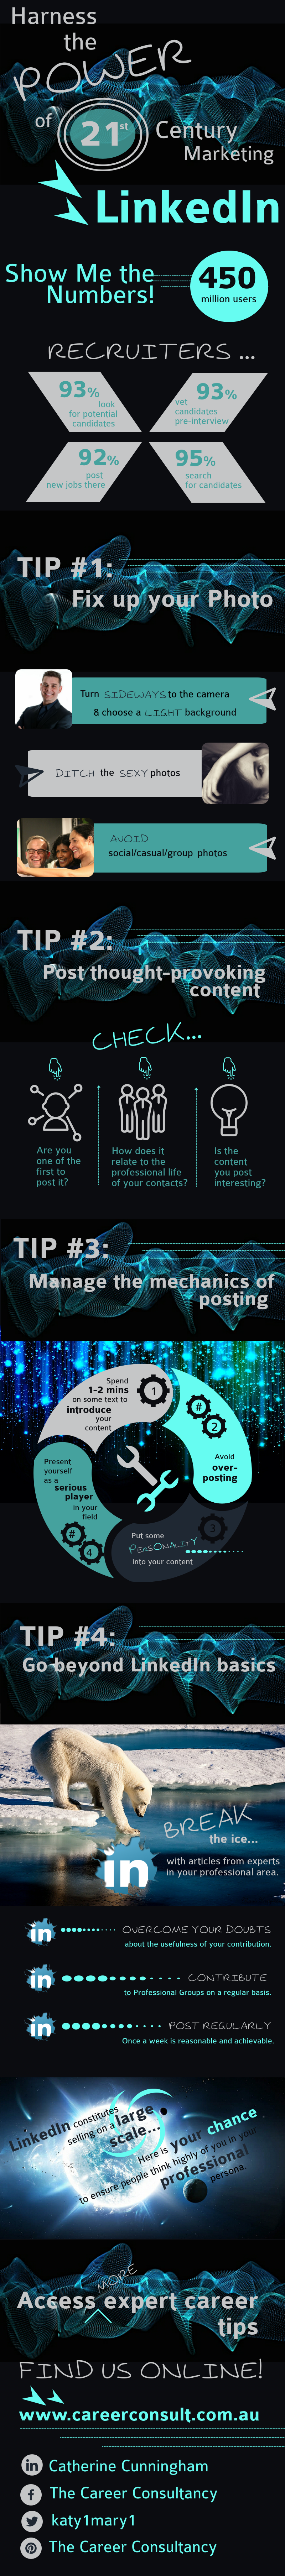 Infographic on how to harness the power of LinkedIn for your career self-marketing. By Catherine Cunningham of The Career Consultancy.